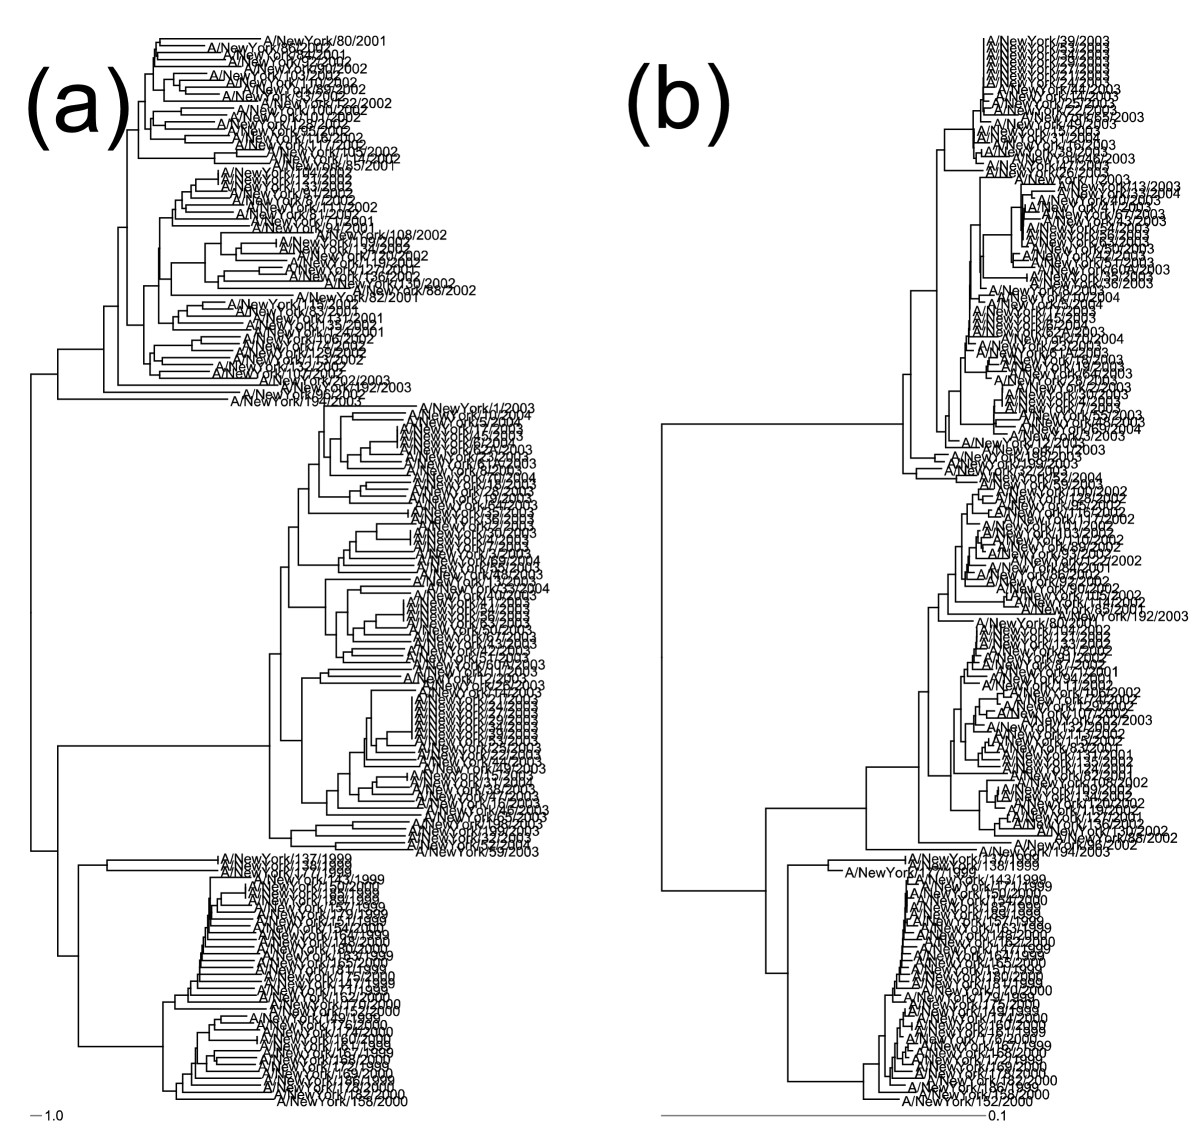 https://static-content.springer.com/image/art%3A10.1186%2F1751-0473-6-13/MediaObjects/13029_2011_Article_66_Fig2_HTML.jpg